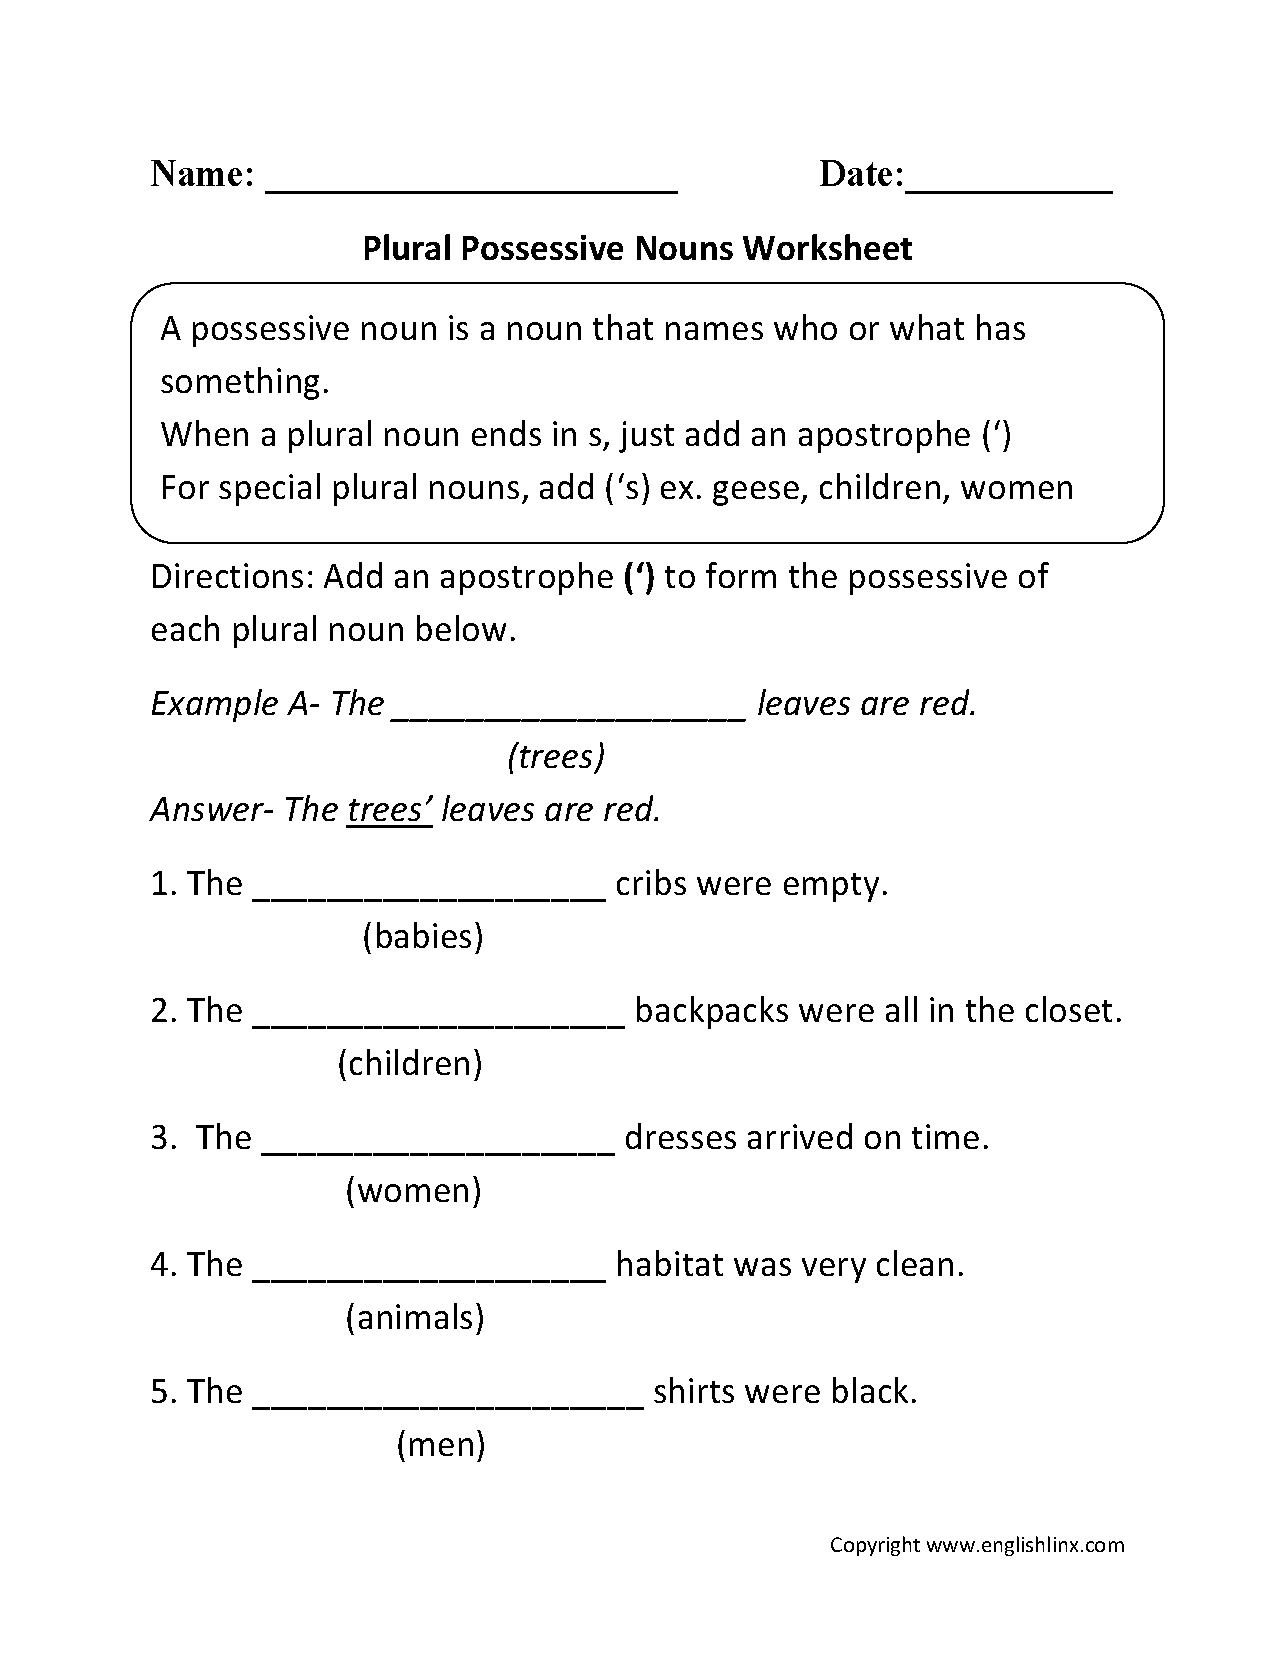 Nouns Worksheets | Possessive Nouns Worksheets | Possessive Pronouns Printable Worksheets